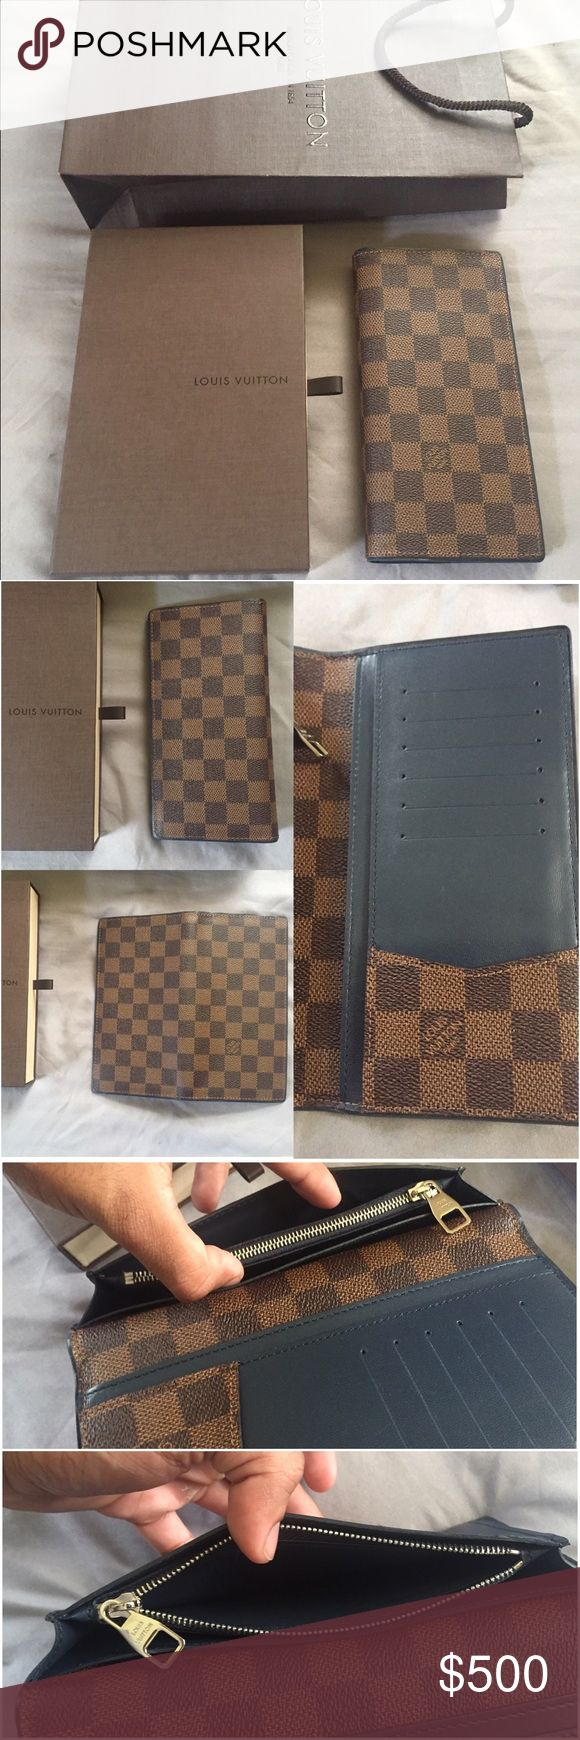 Louis Vuitton Brazza Long Wallet Ebene Blue M63168 Pre-owned well kept and used gently with care! LV Brazza Long Wallet Damier Ebene canvas with Navy blue trim Portefeuille wallet!8/10 condition has some small blemishes!  Included: LV drawer box and shopping bag! (No dustbag or tags!) Model: M93801 Serial inside: VI0146 Will go lower through 🅿️🅿️al $420 shipped! Signature confirmation is a must along with insurance! No scams, no BS! This will not last long! Act Fast, this is cross listed…